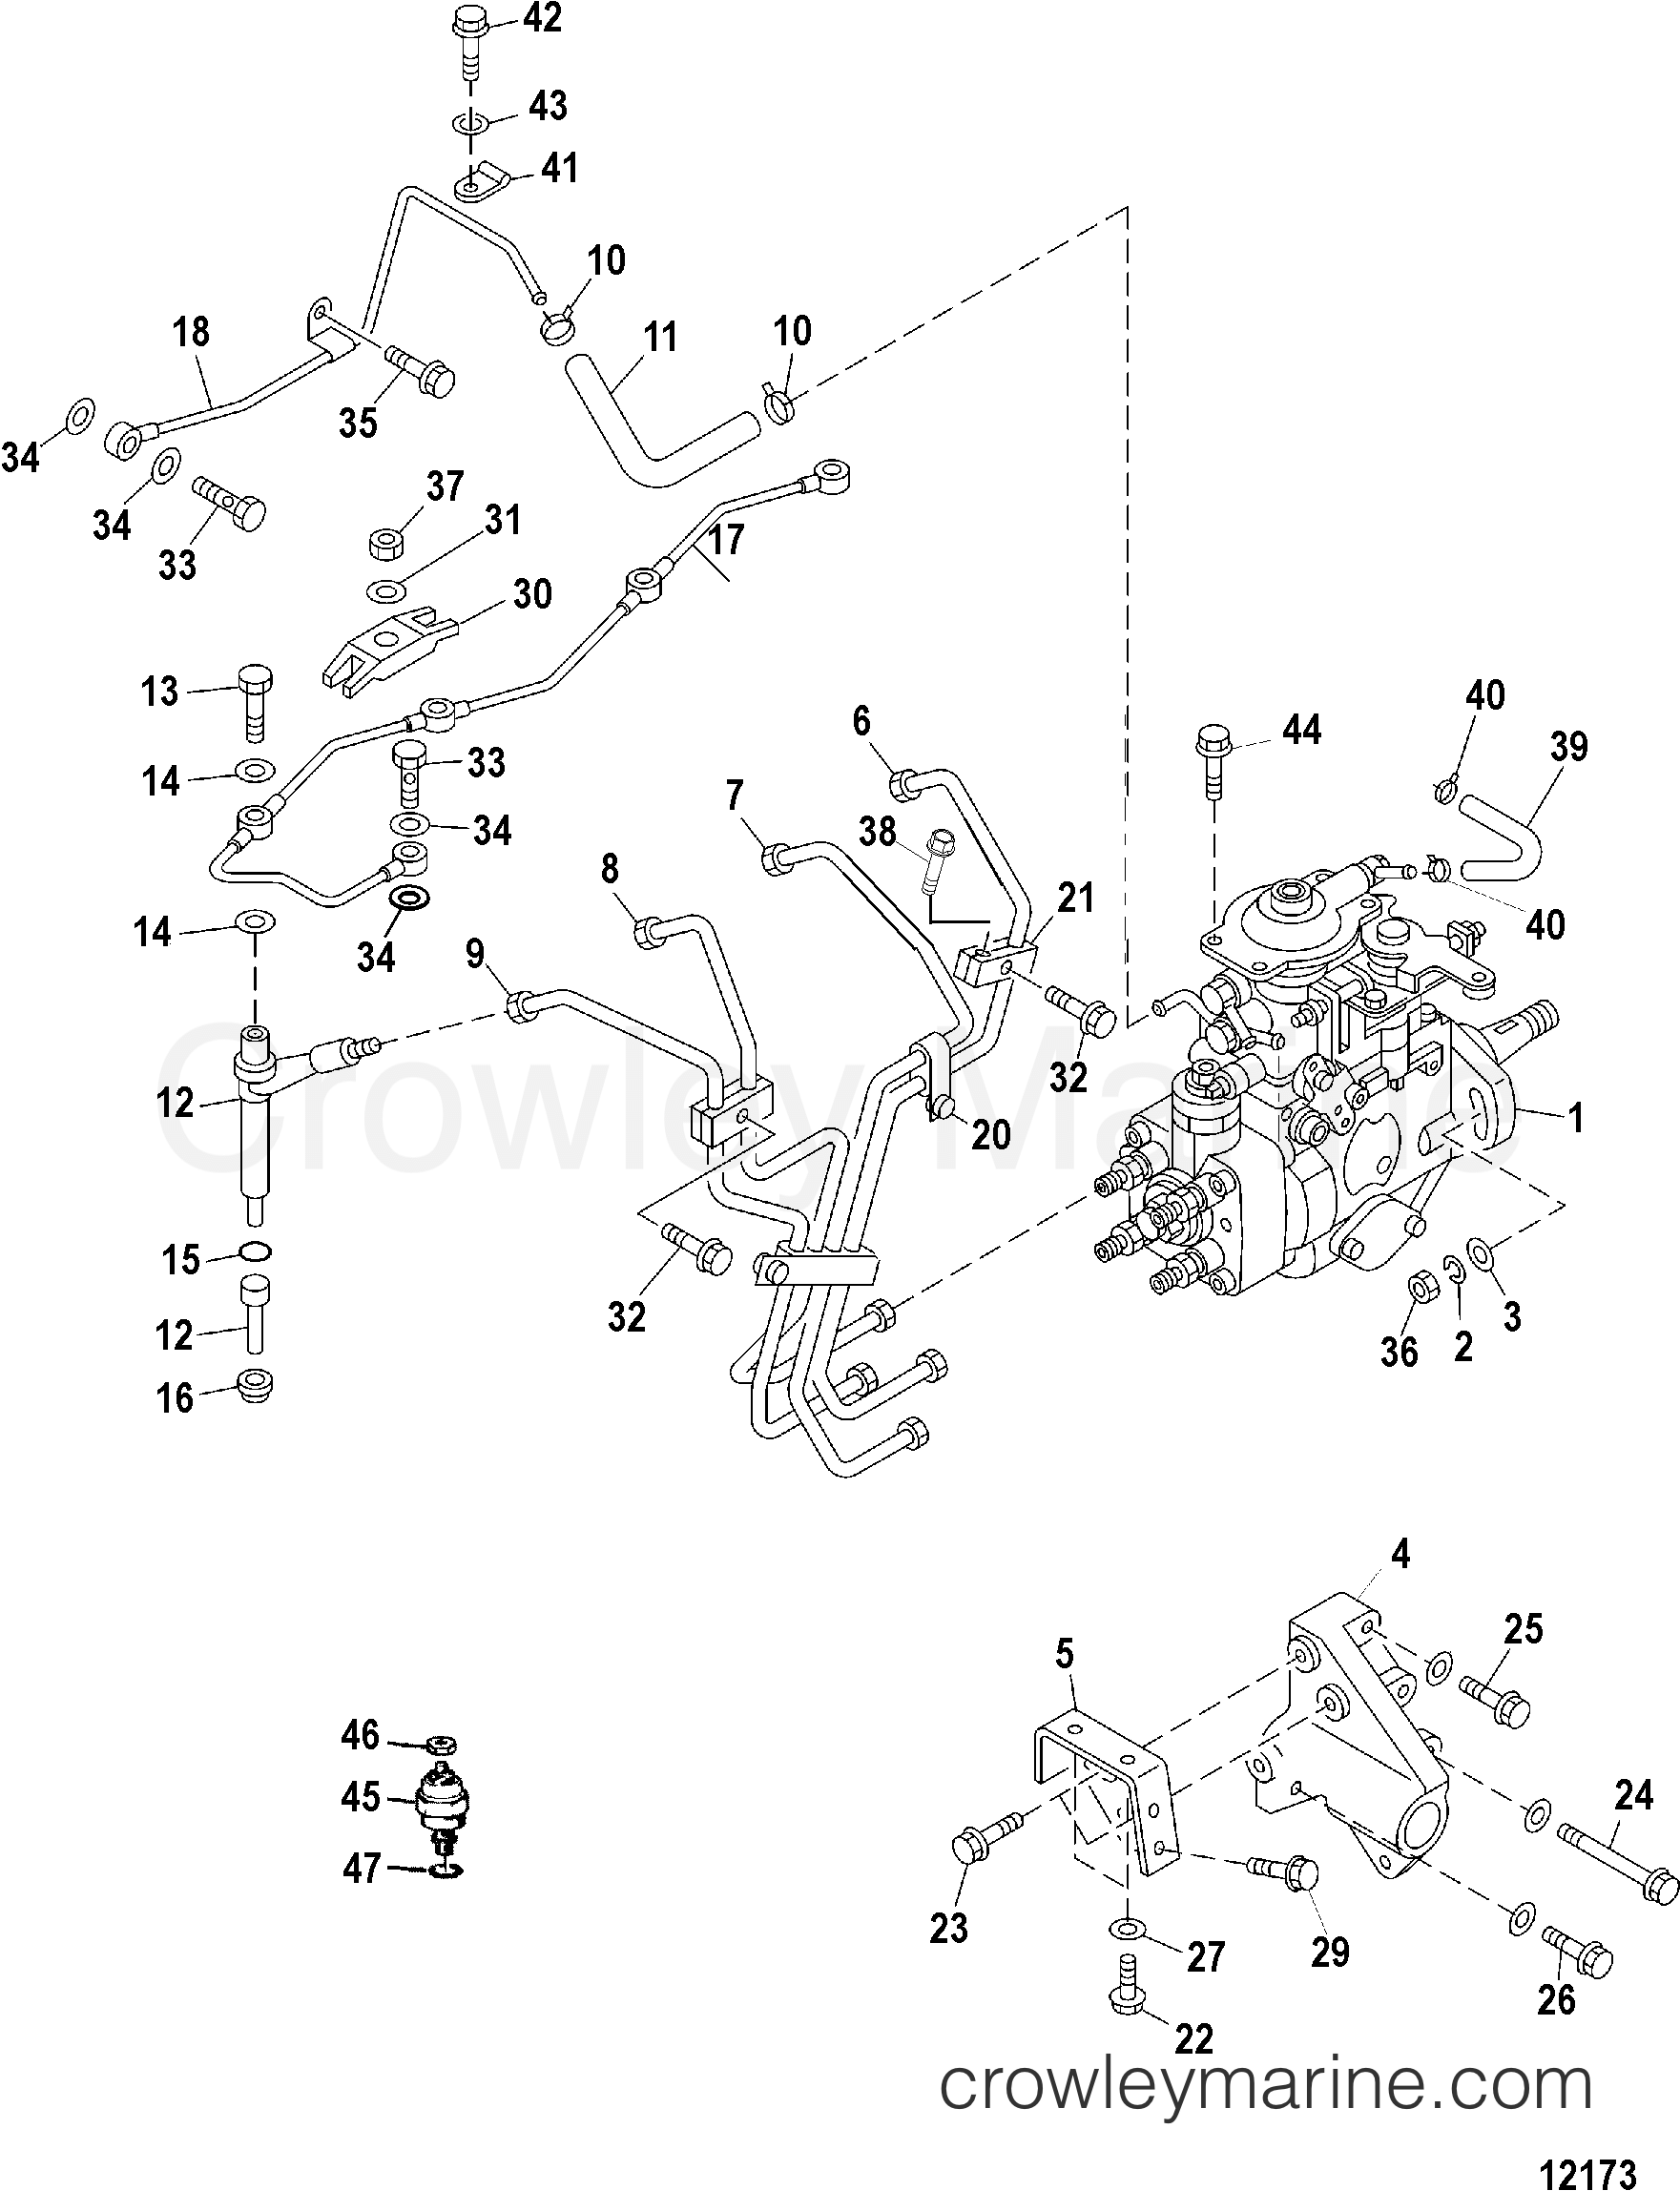 Fuel Injection System